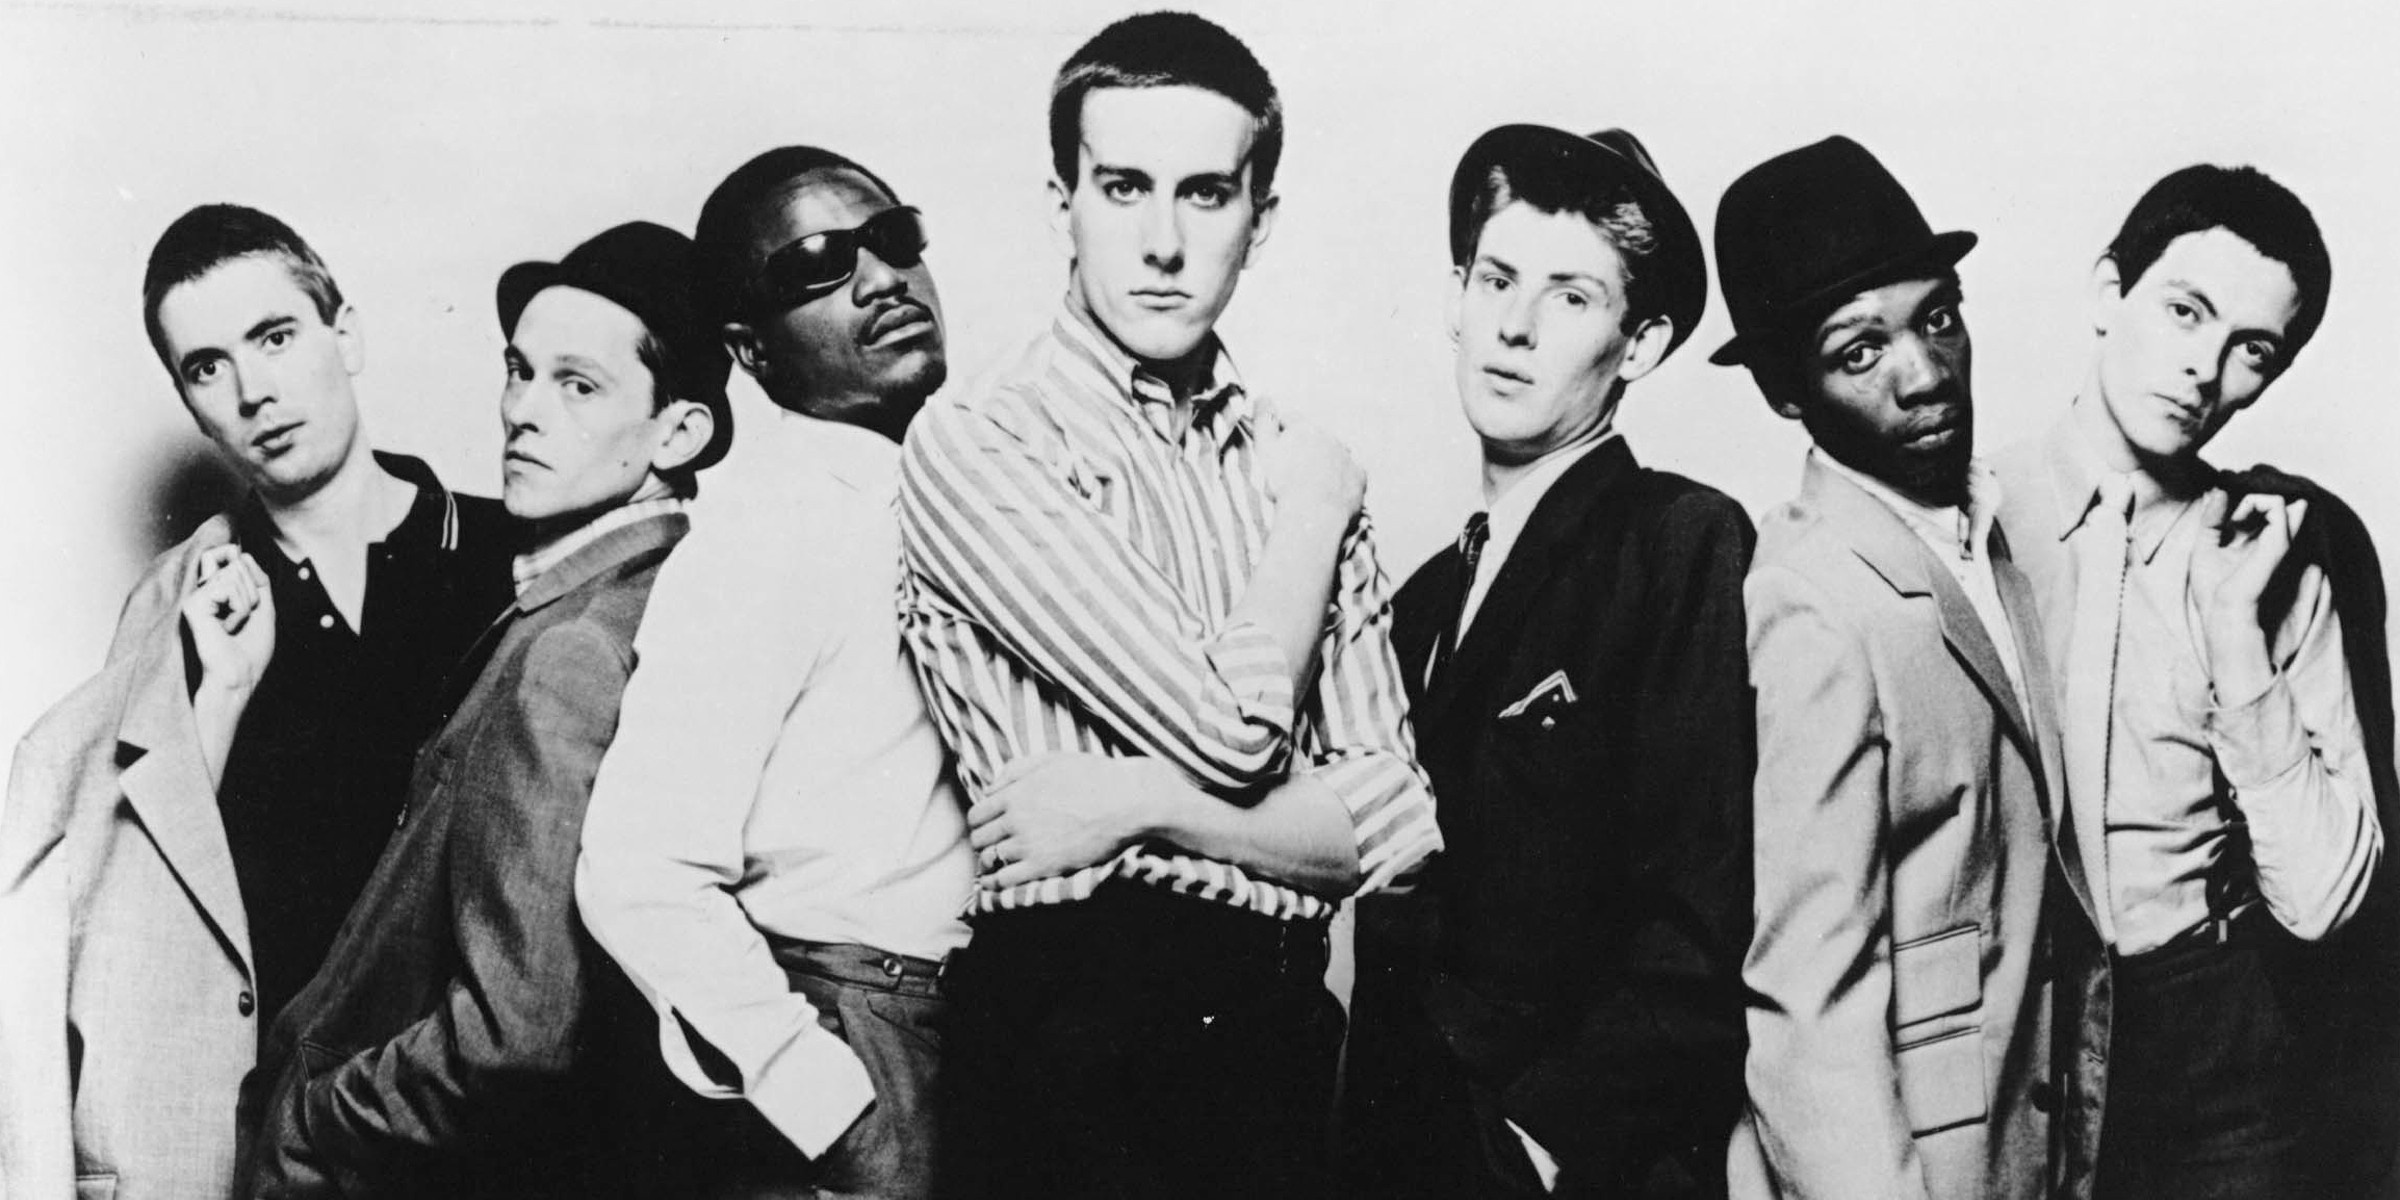 Essentials: The Specials' self-titled (1979)